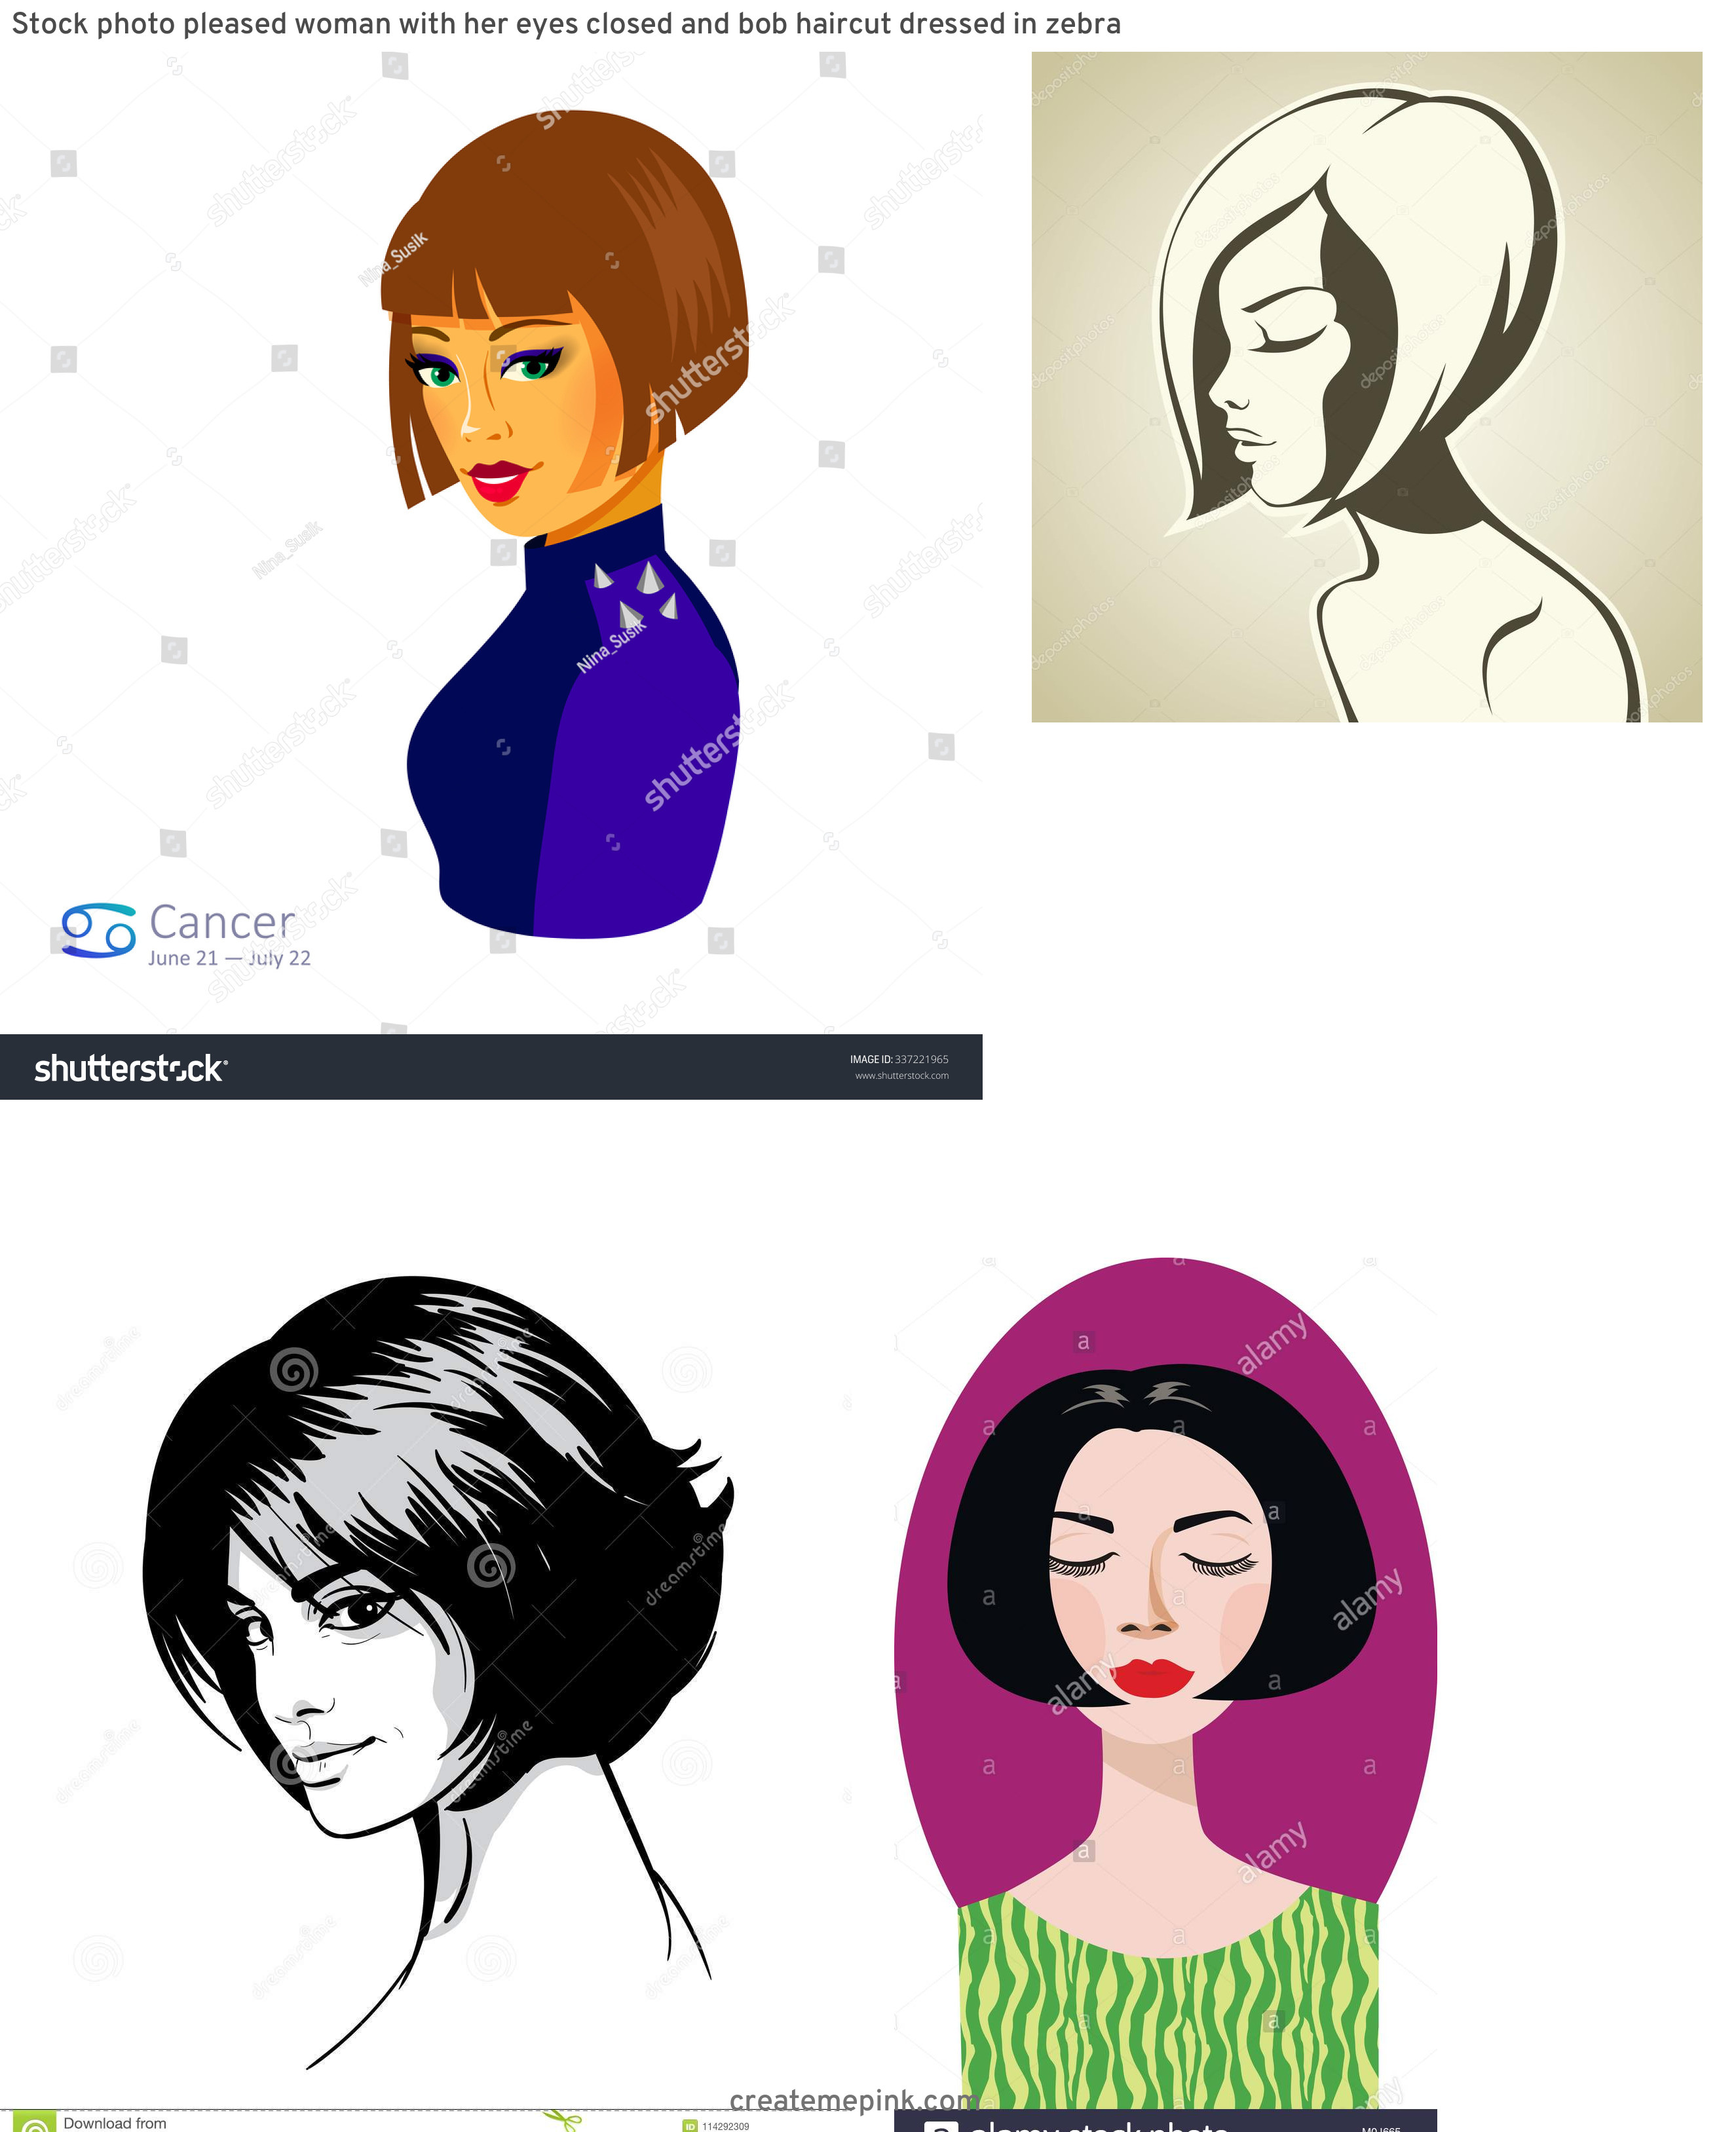 Vector Bob Haircut: Stock Photo Pleased Woman With Her Eyes Closed And Bob Haircut Dressed In Zebra